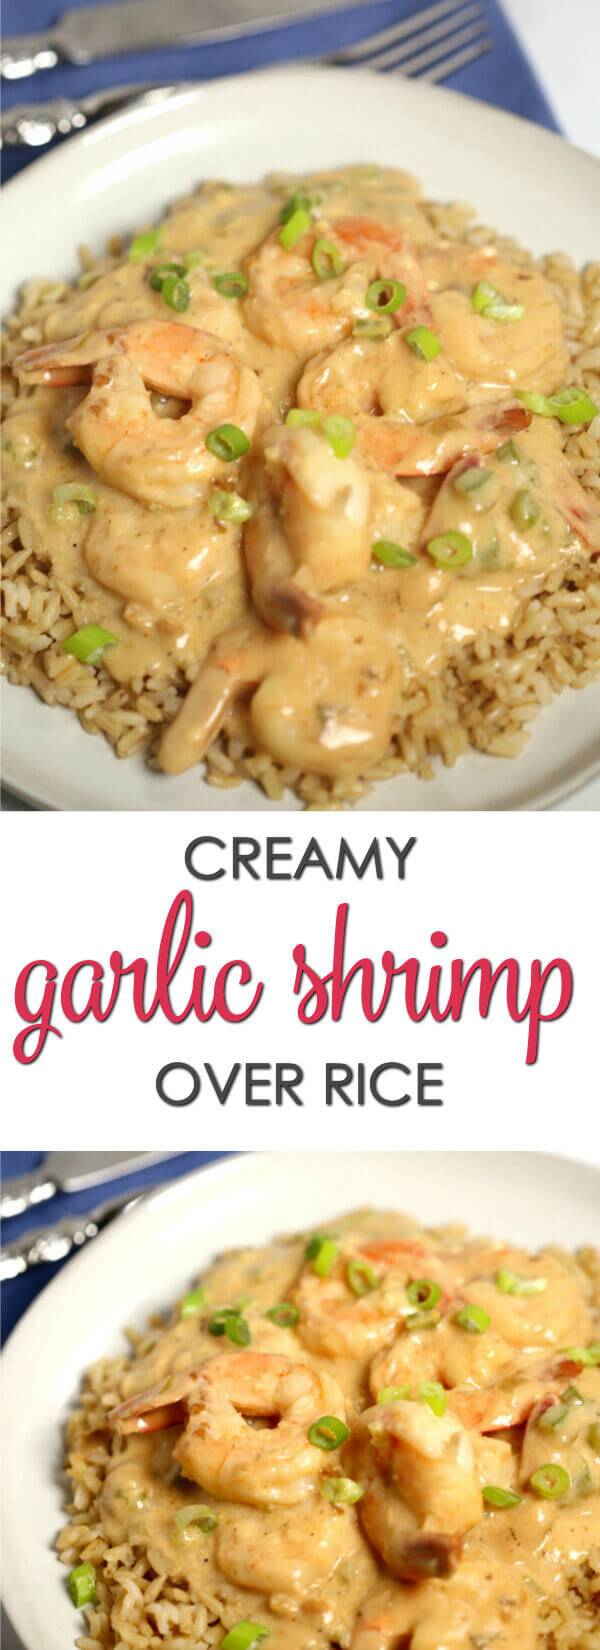 This Creamy Garlic Shrimp and Rice recipes is one of my favorite quick and easy meals.  It's easy to make and is ready in less than 30 minutes.